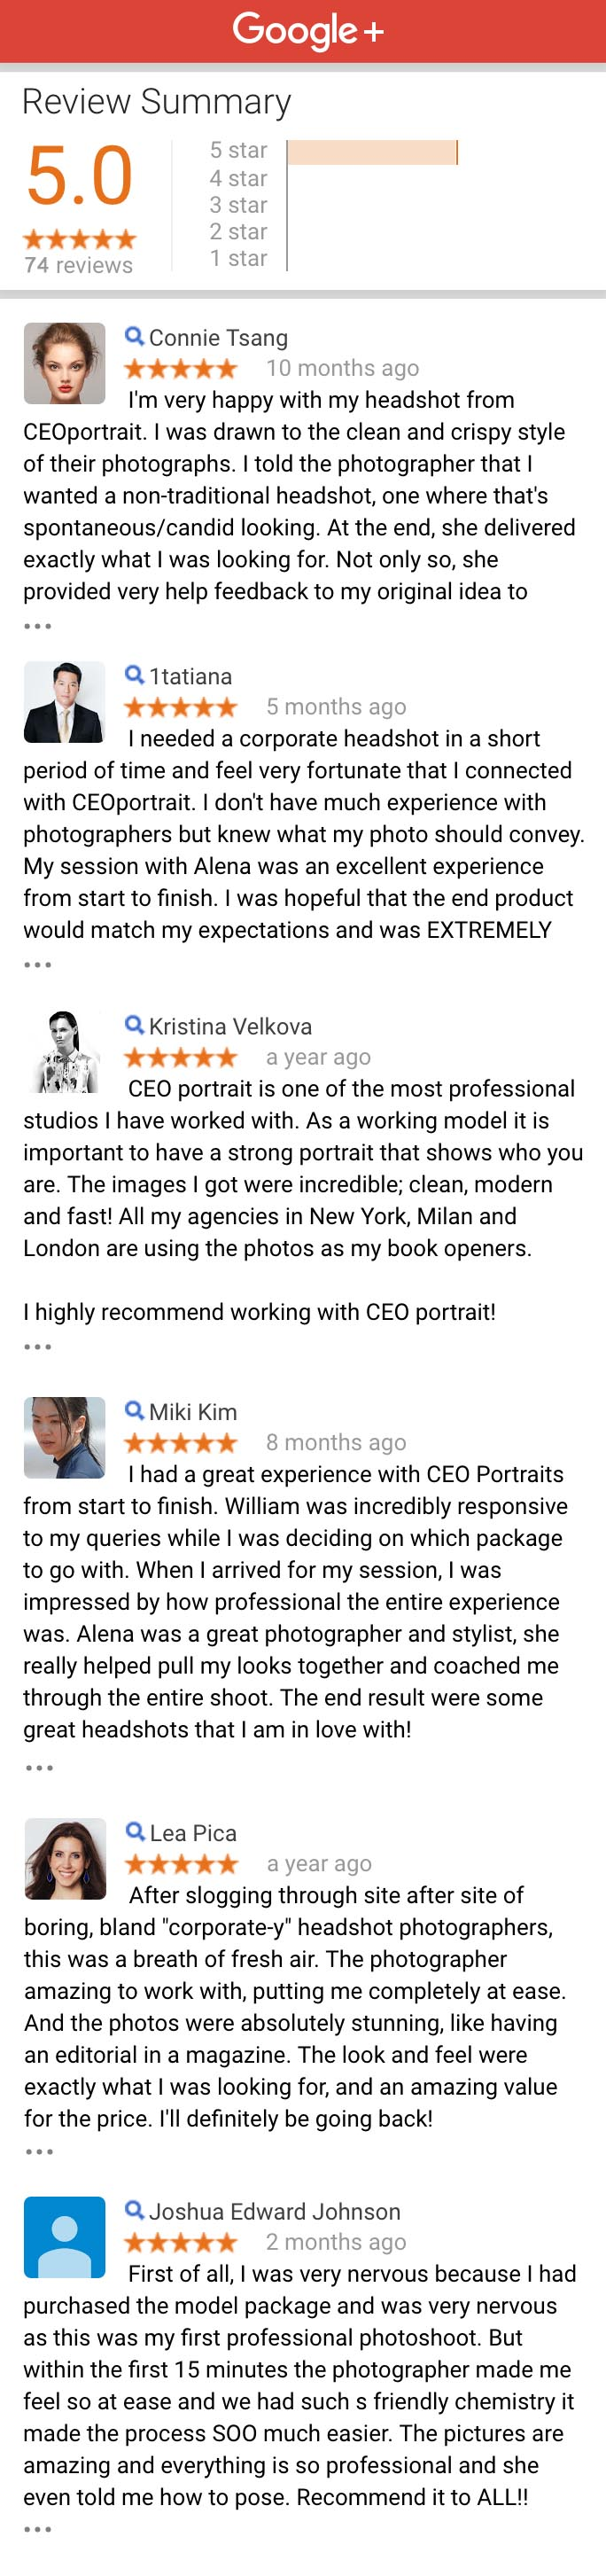 CEOportrait-reviews-G.jpg